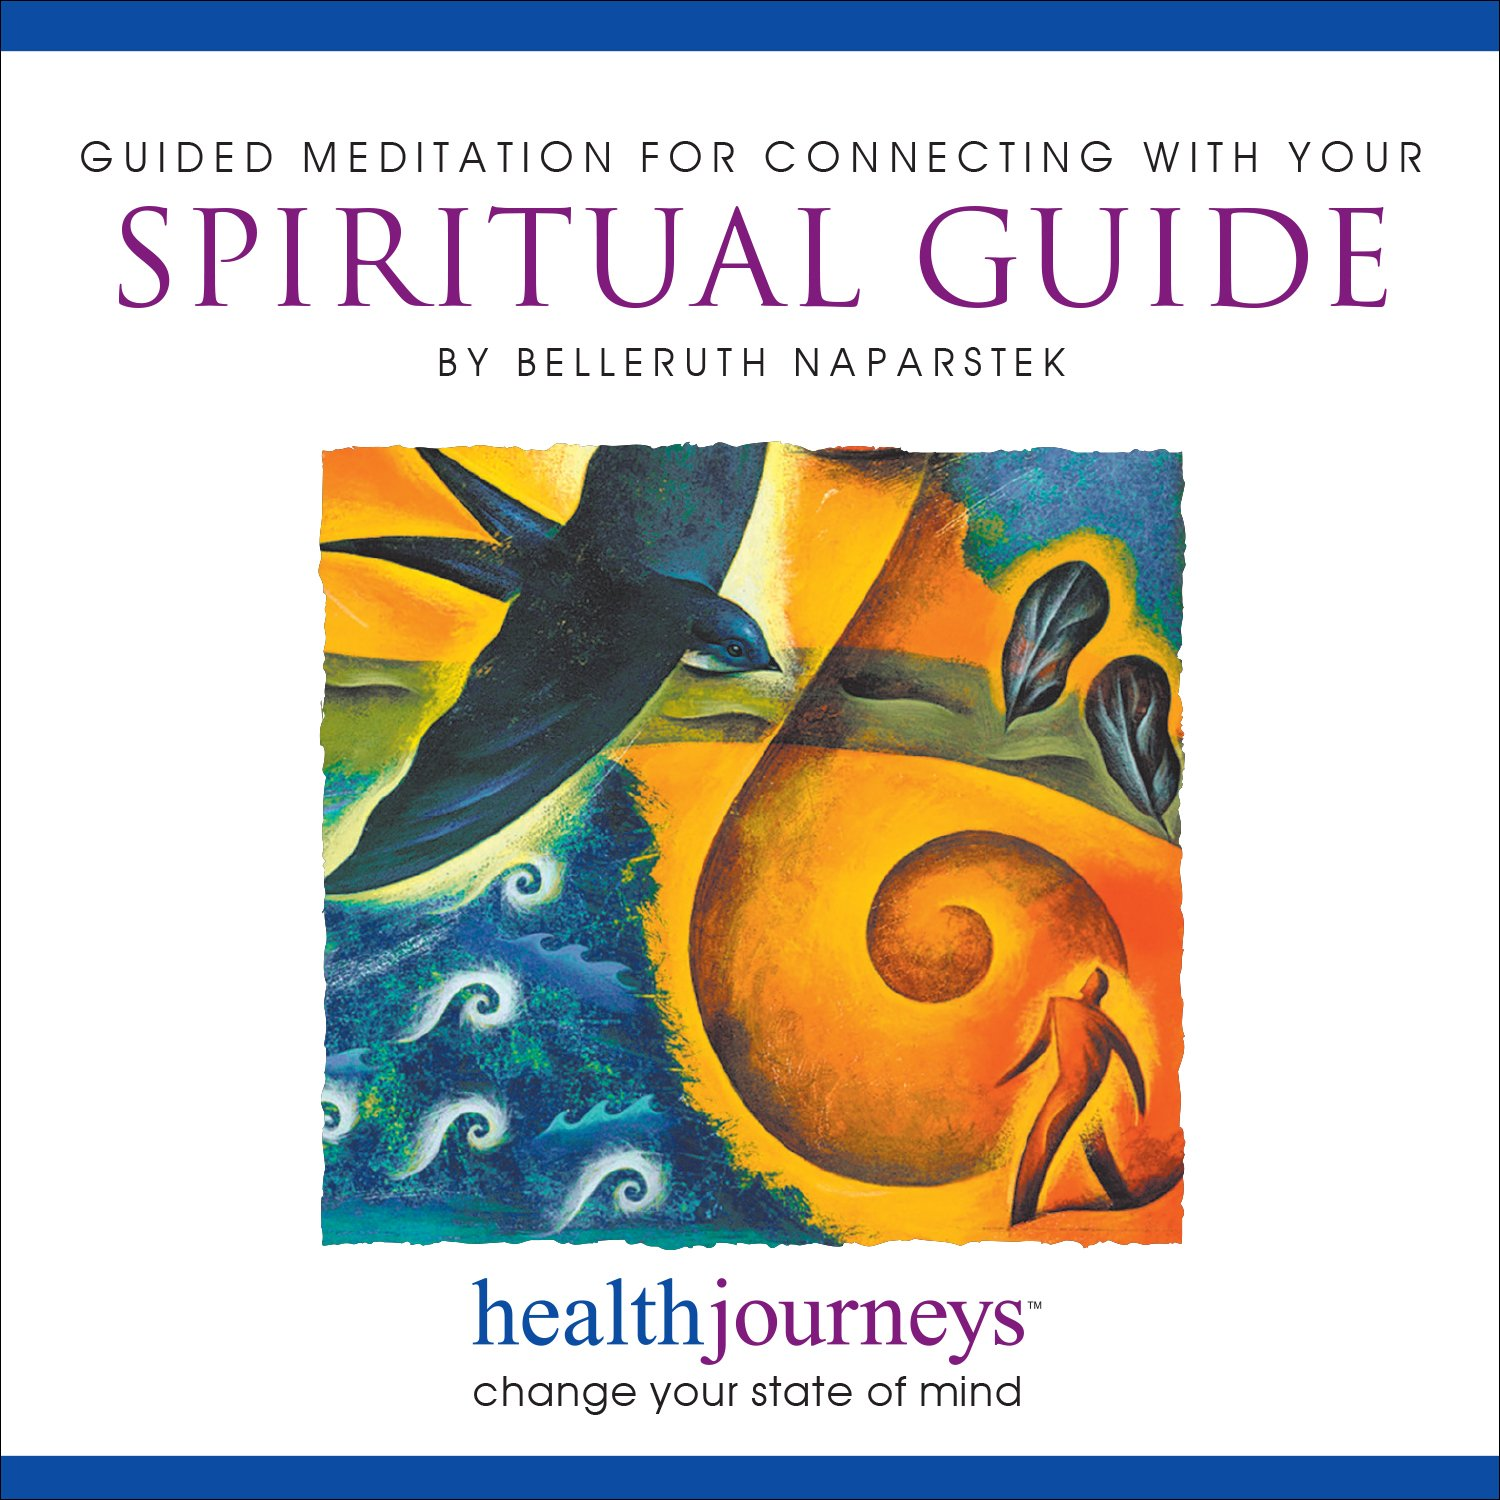 A Guided Meditation for Connecting with Your Spiritual Guide- Guided Imagery and Affirmations to Access Guidance, Support and Inspiration by Health Journeys